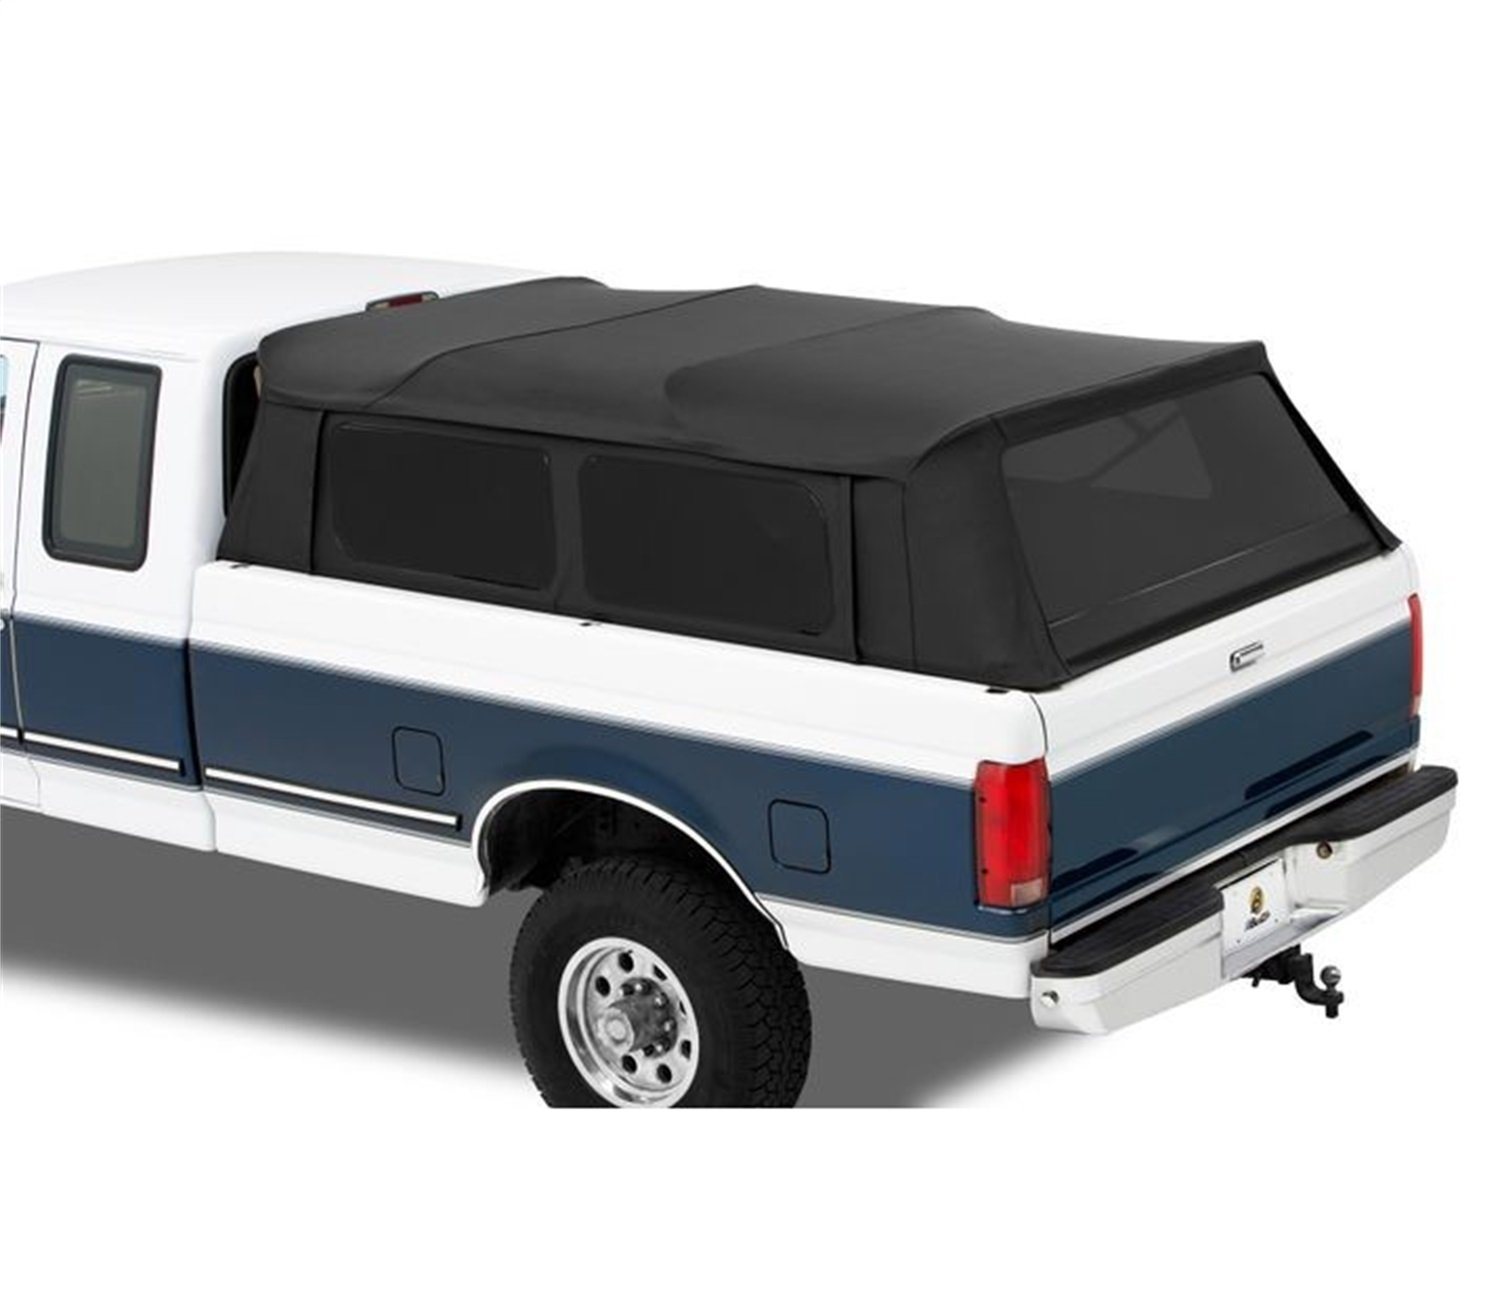 1. Bestop 76309-35 Black Diamond Supertop for Truck